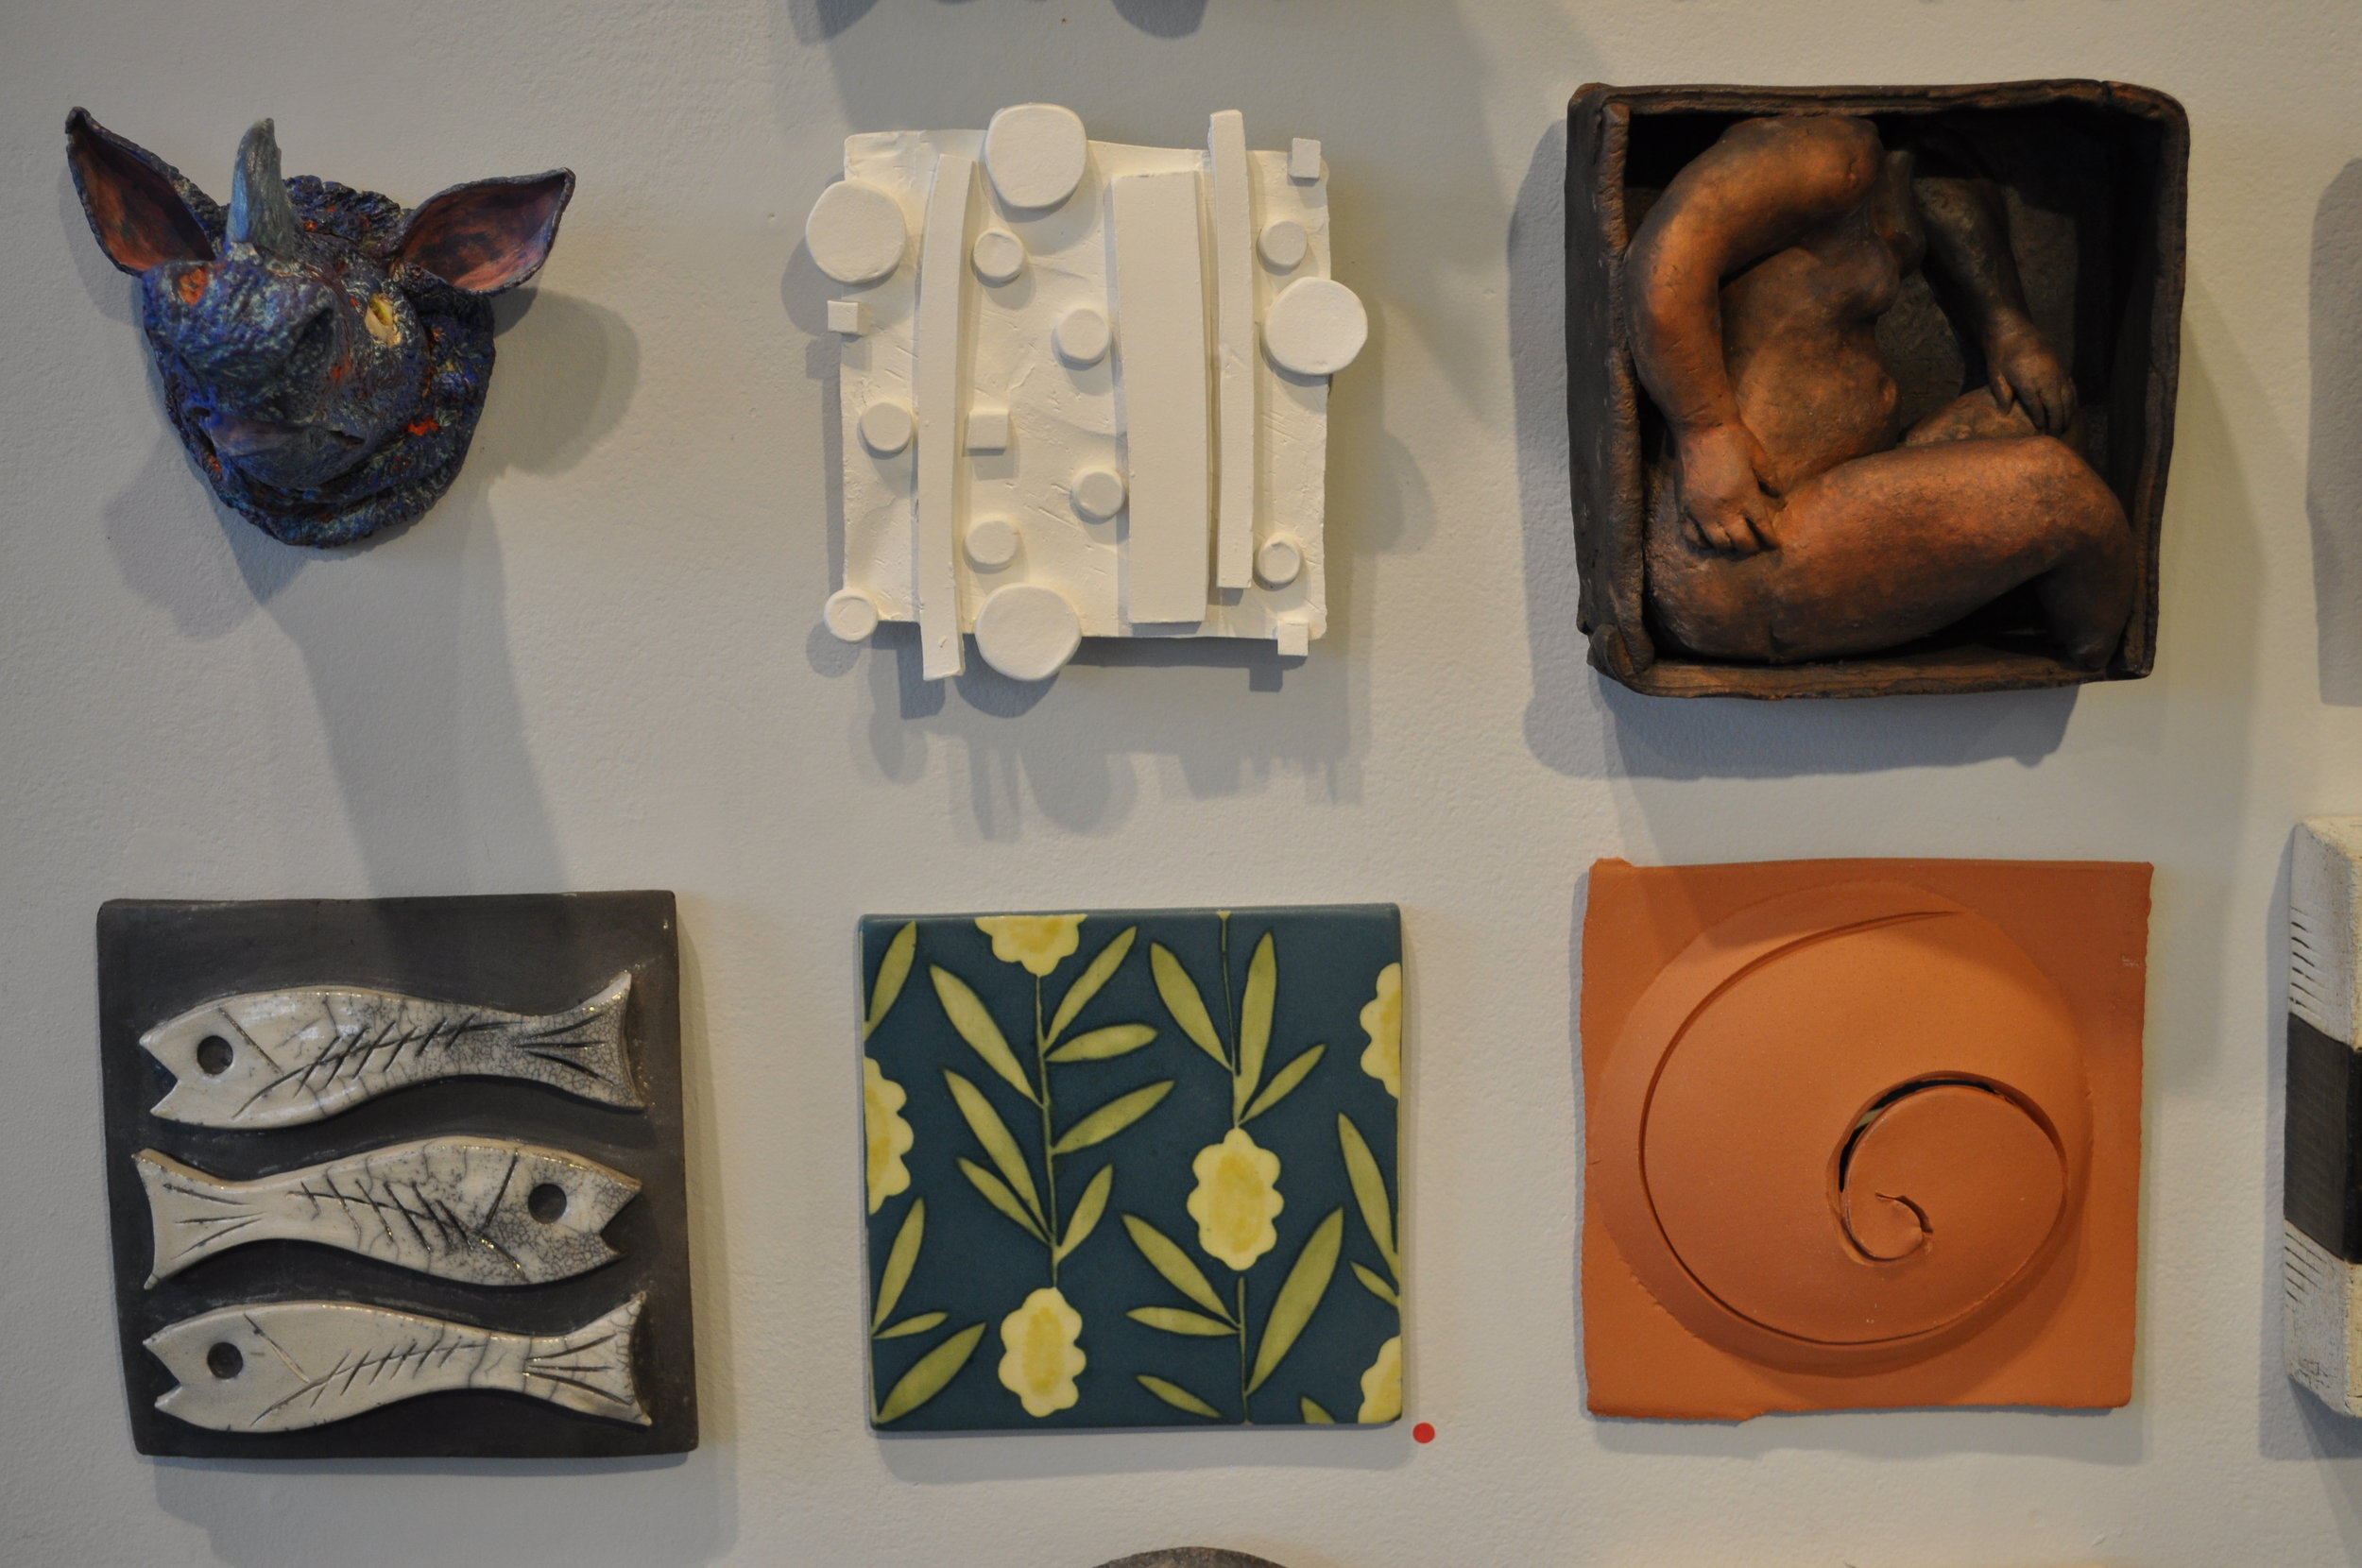 1. Mary Cloonan, Cantakerous(Rhino)  $175 2.Lisa Breznak, Into The Woods  $85 3.Susan Halls, Boxed Nude $410 4.Rimmie Mosley, 3 Fish  #1 $75 5.Brenda Quinn, Yellow Flowers SOLD 6.Denis Licul, Reaction #3  $180